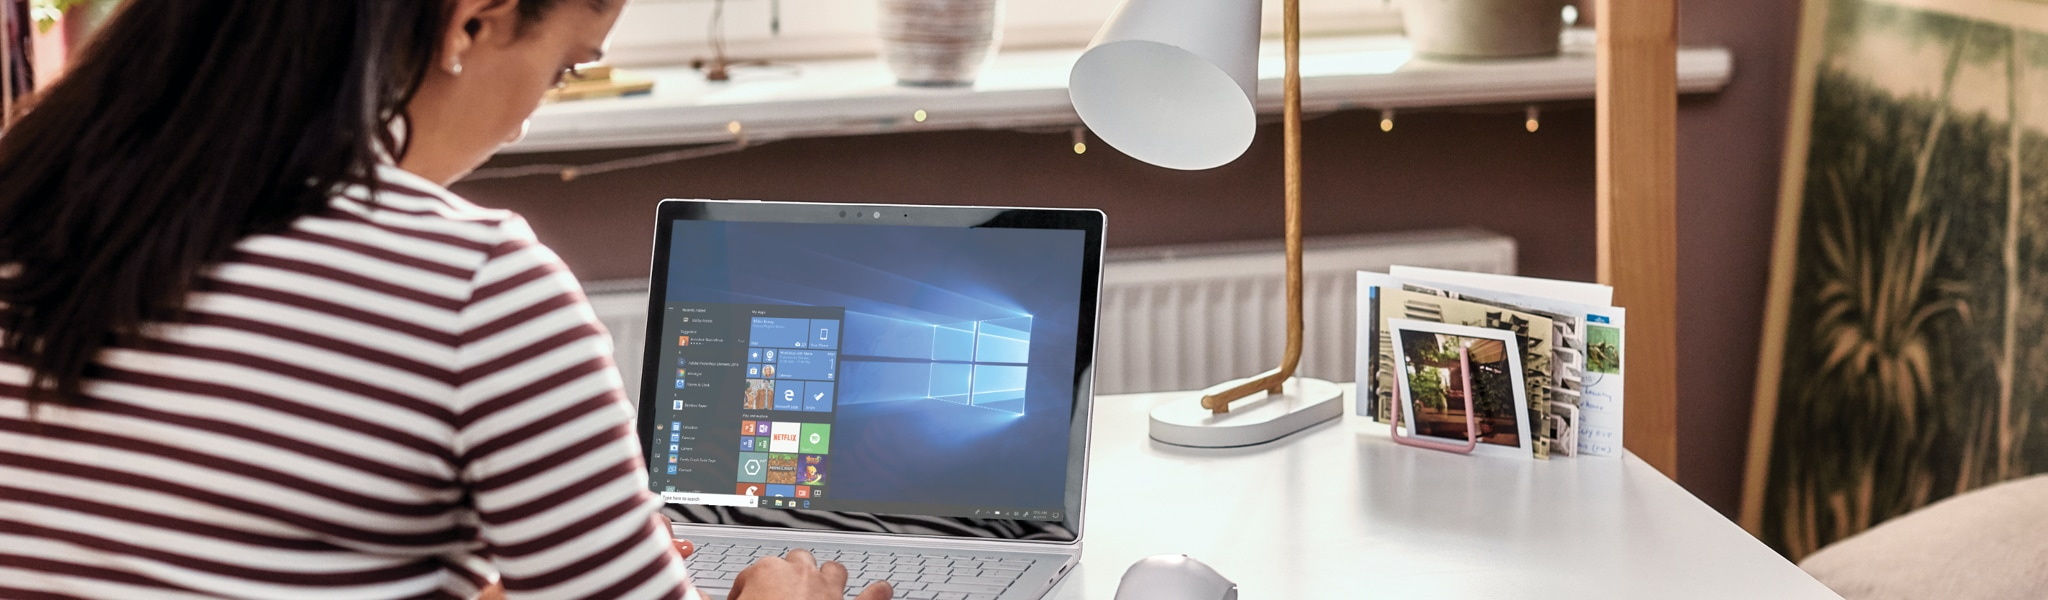 Person seated at a desk in a casual office setting working on a laptop that is displaying the Windows 10 home screen